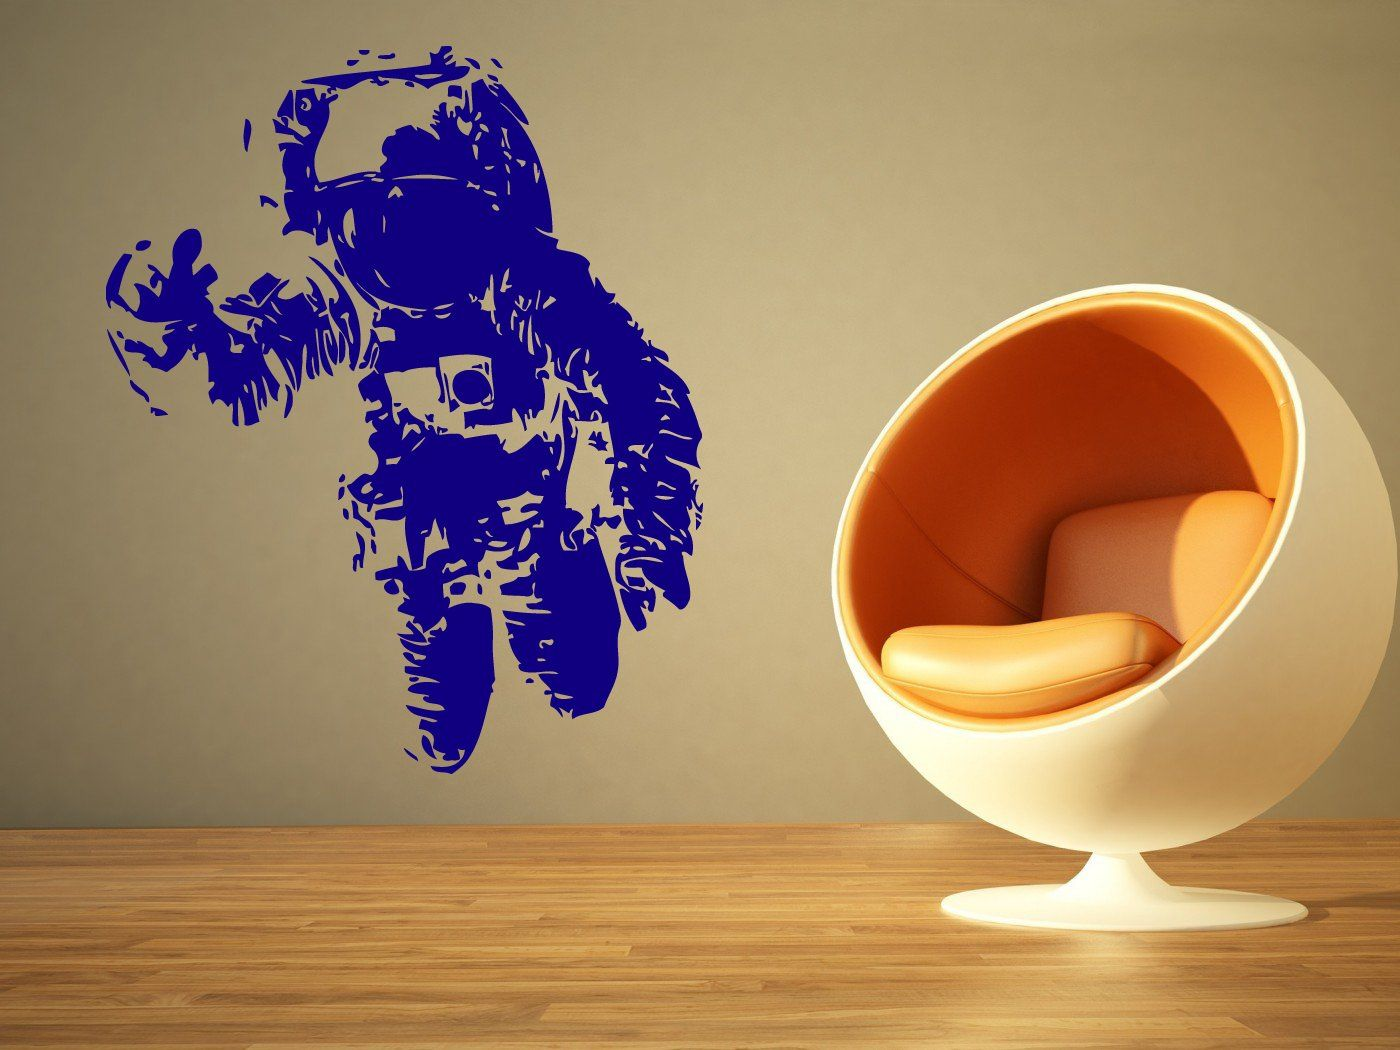 Wall Room Decor Art Vinyl Decal Sticker Mural Spaceman Spacesuit ...